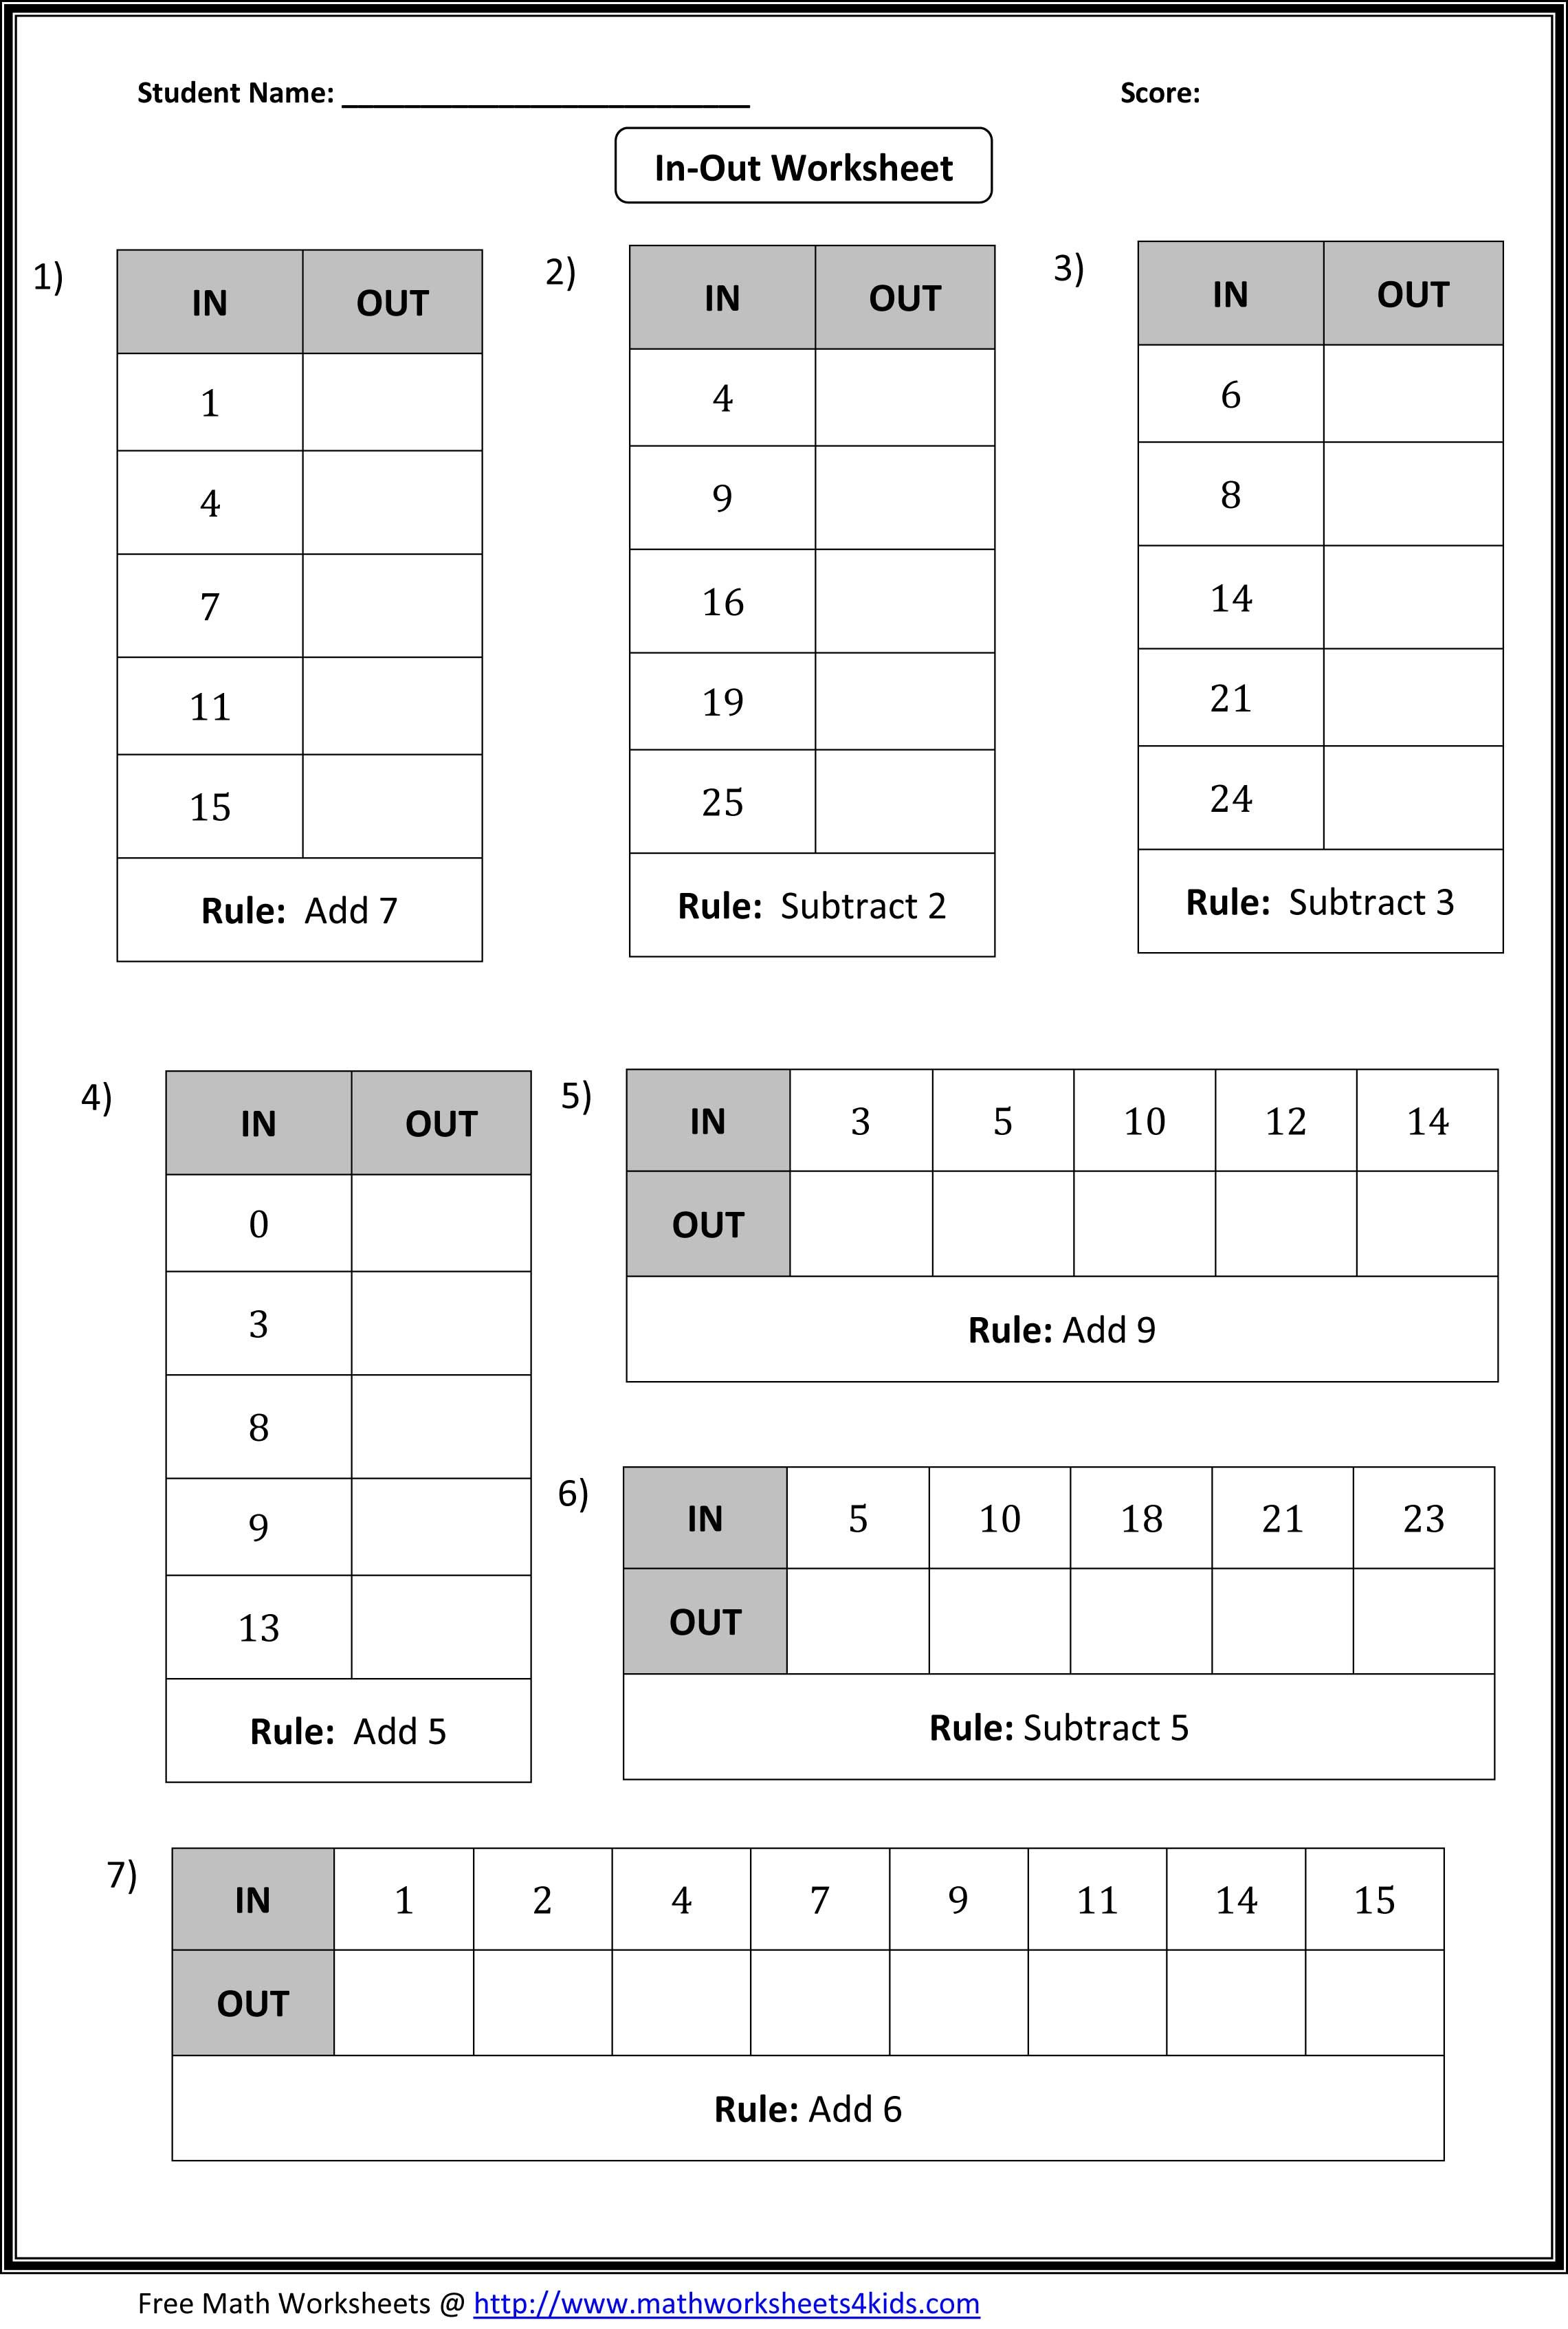 InOut Boxes Worksheets Include addition subtraction – Multiplying Whole Numbers Worksheets